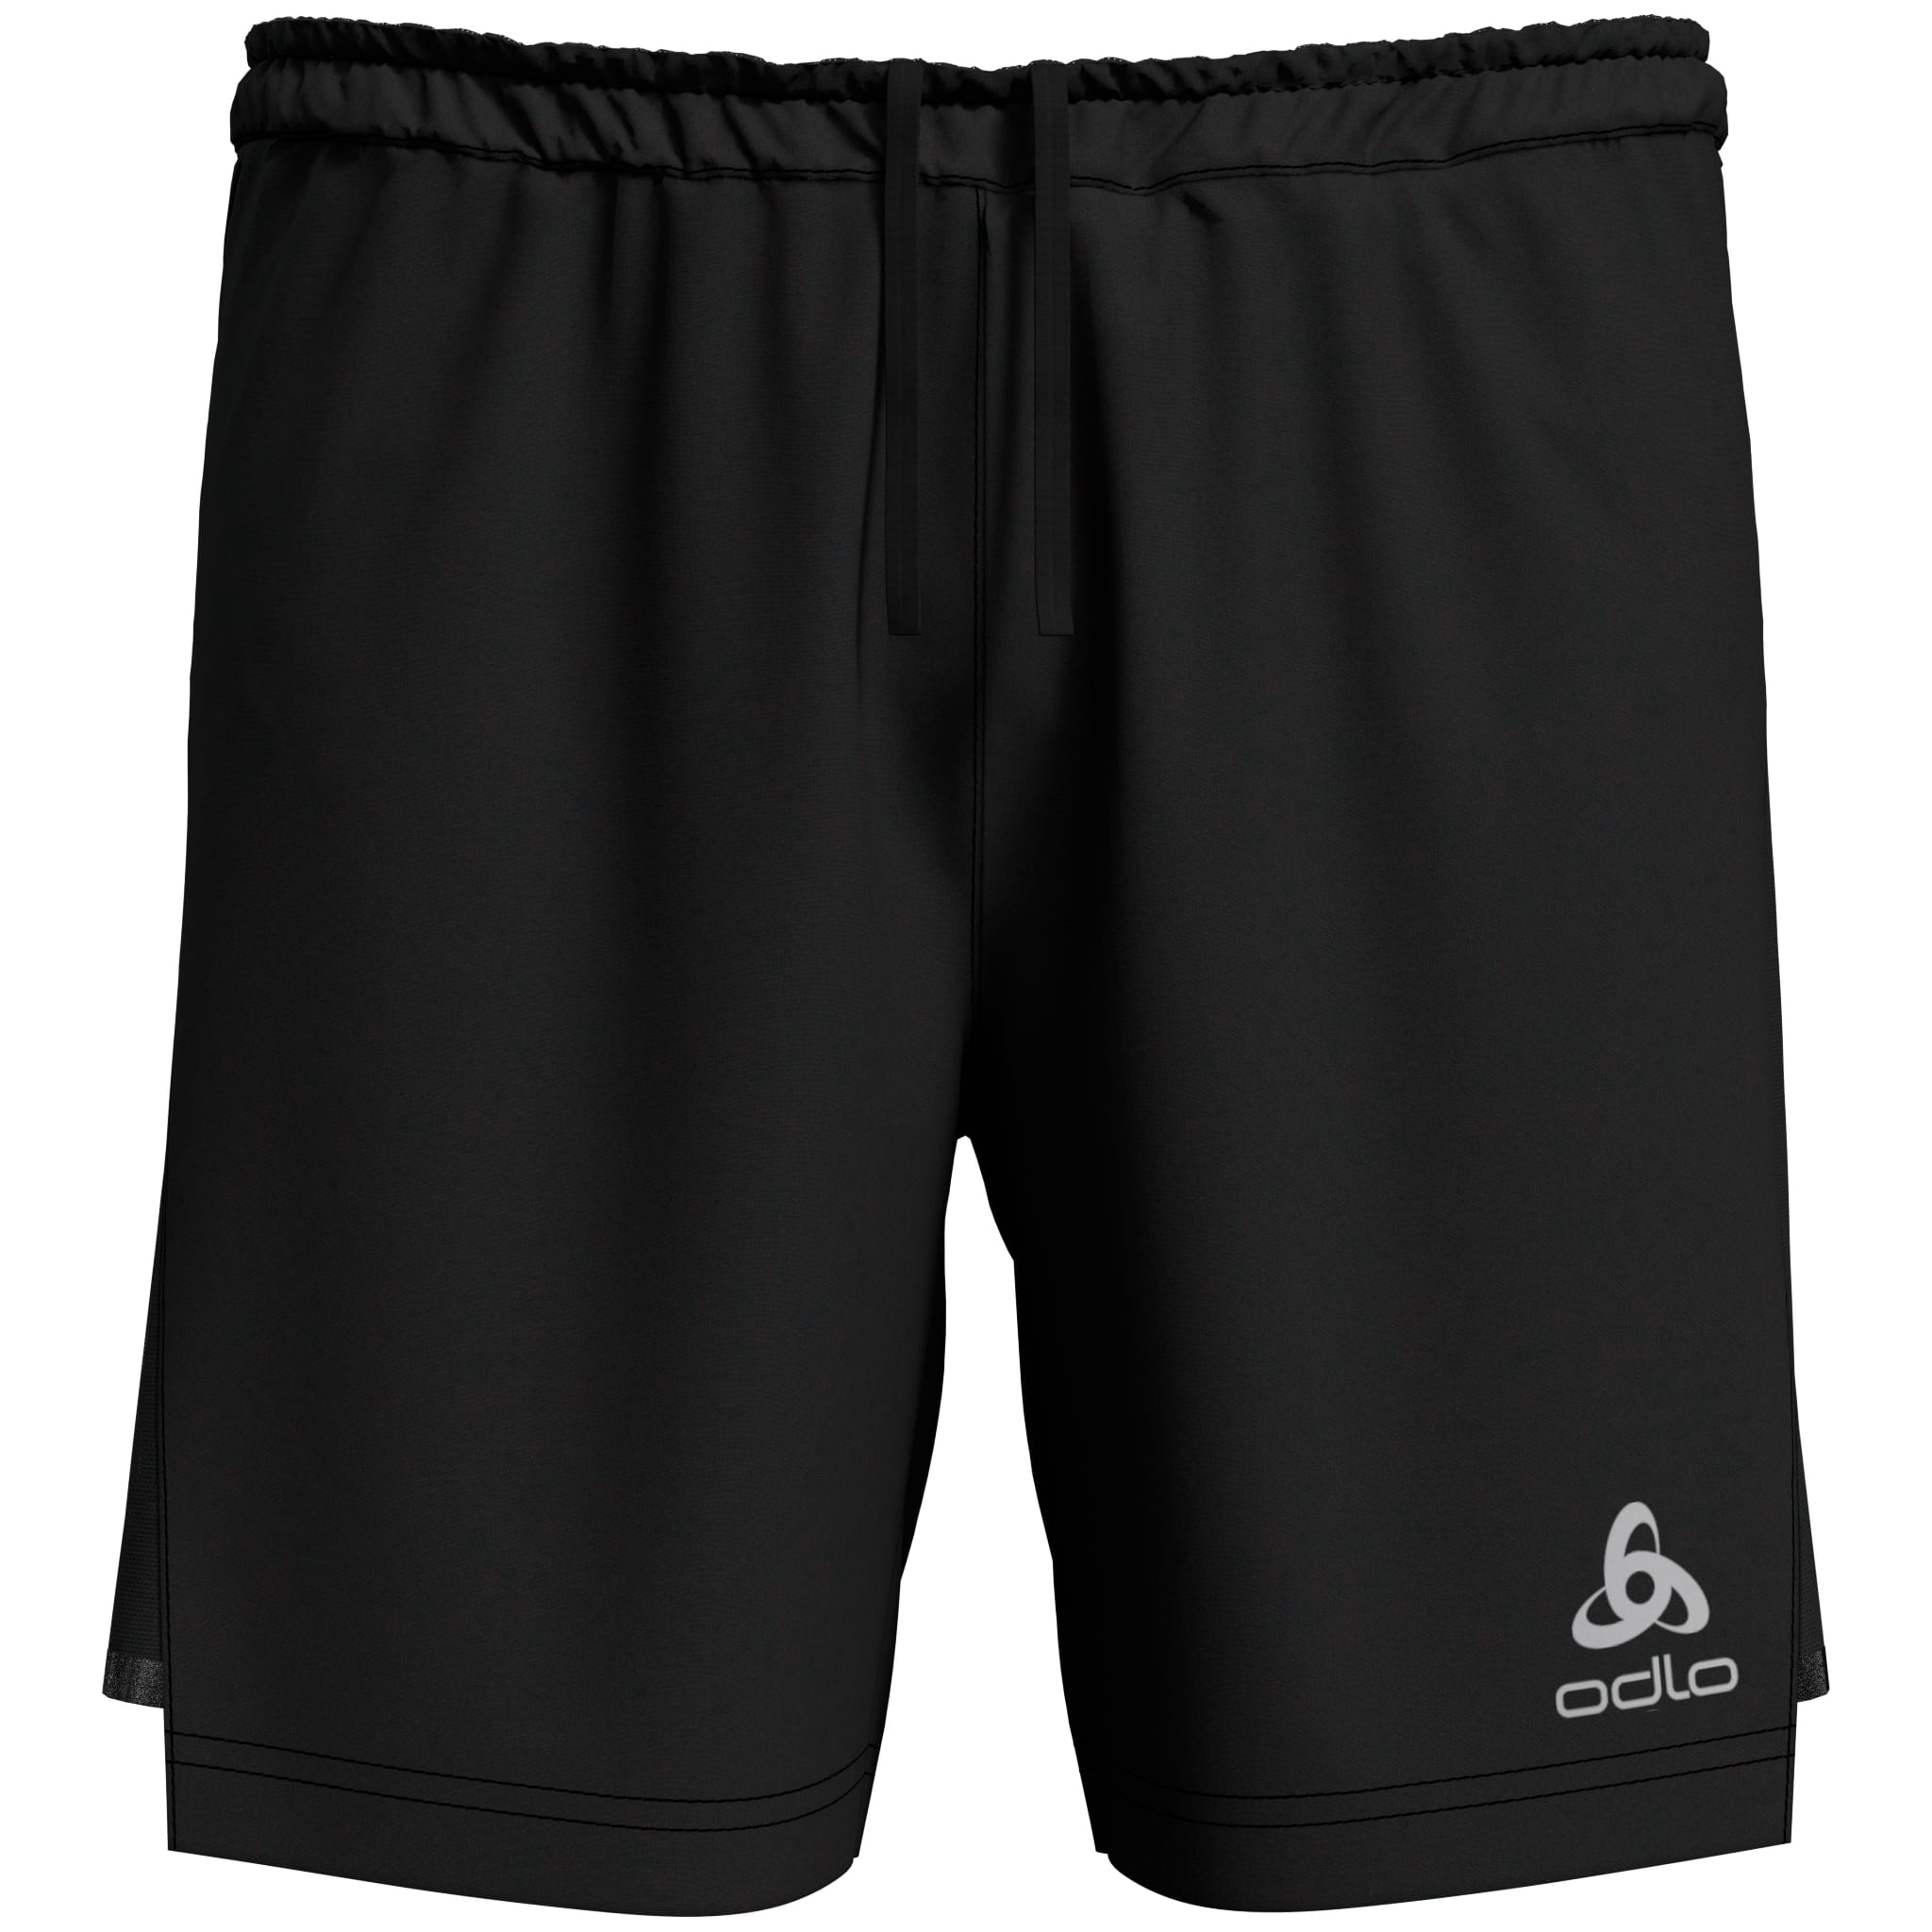 2-in-1 Shorts Zeroweight Ceramicool